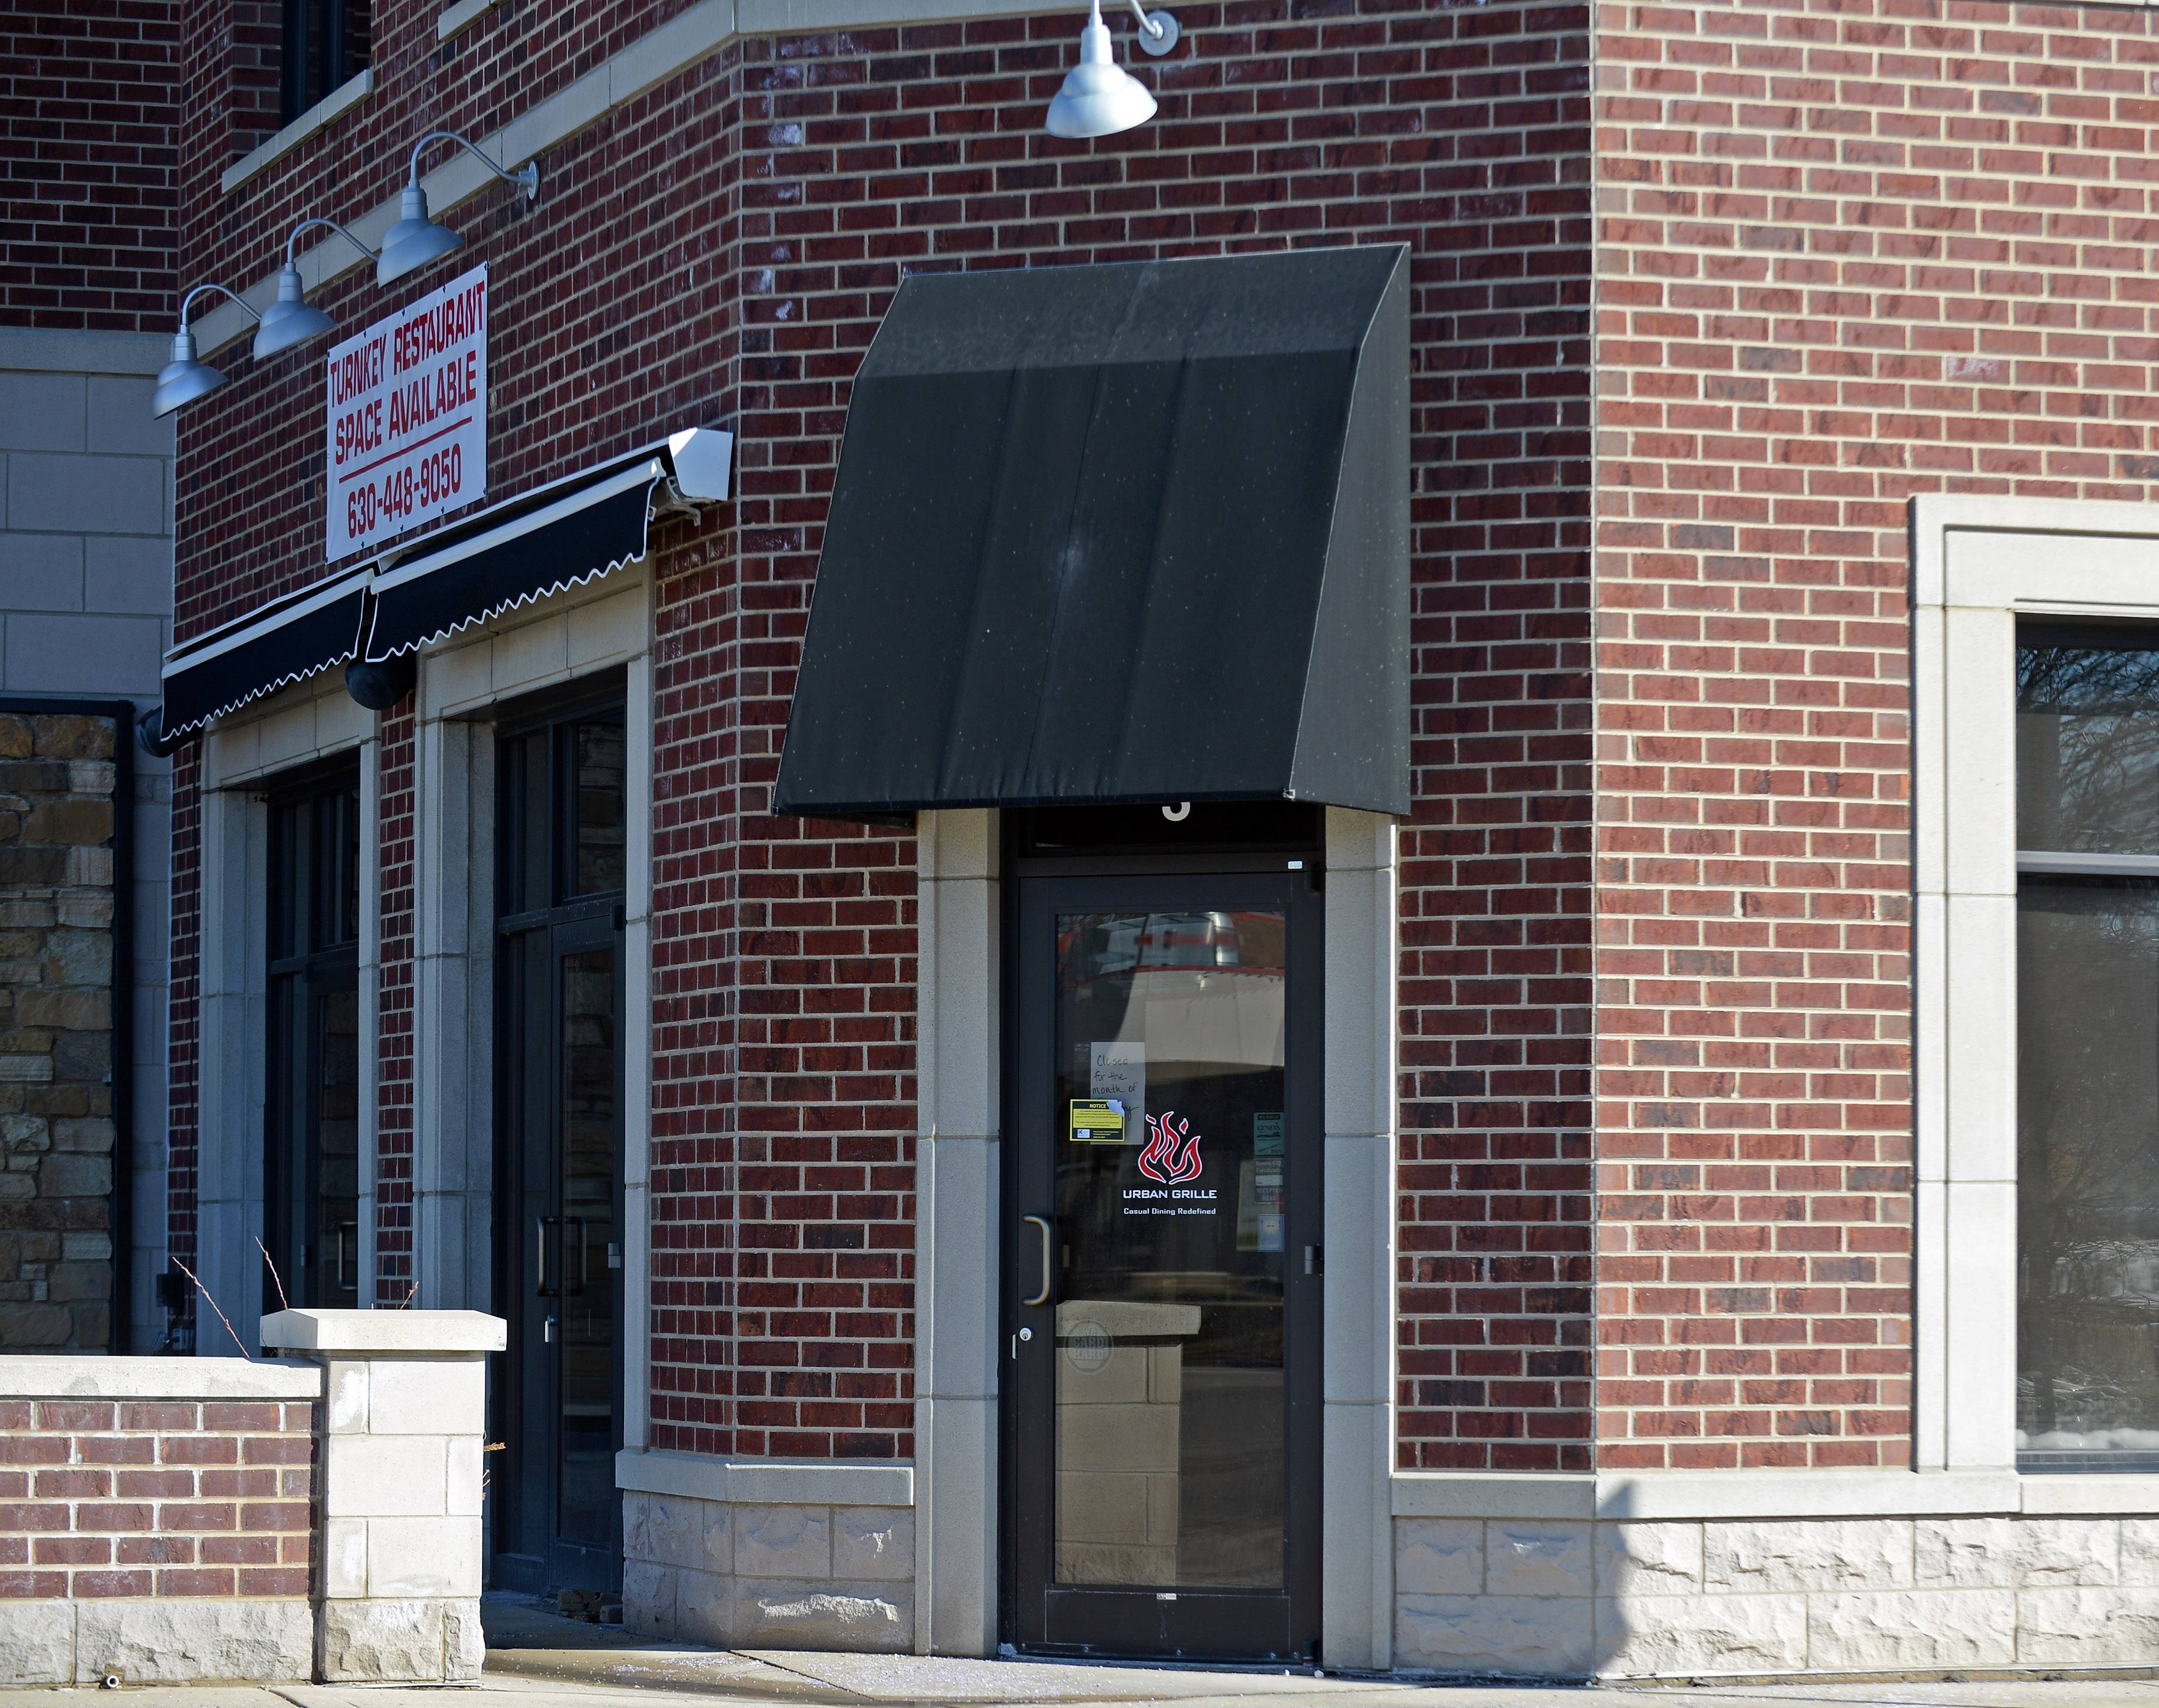 Urban Grille in Geneva is likely closed for good. No word yet on a future occupant for the downtown site.